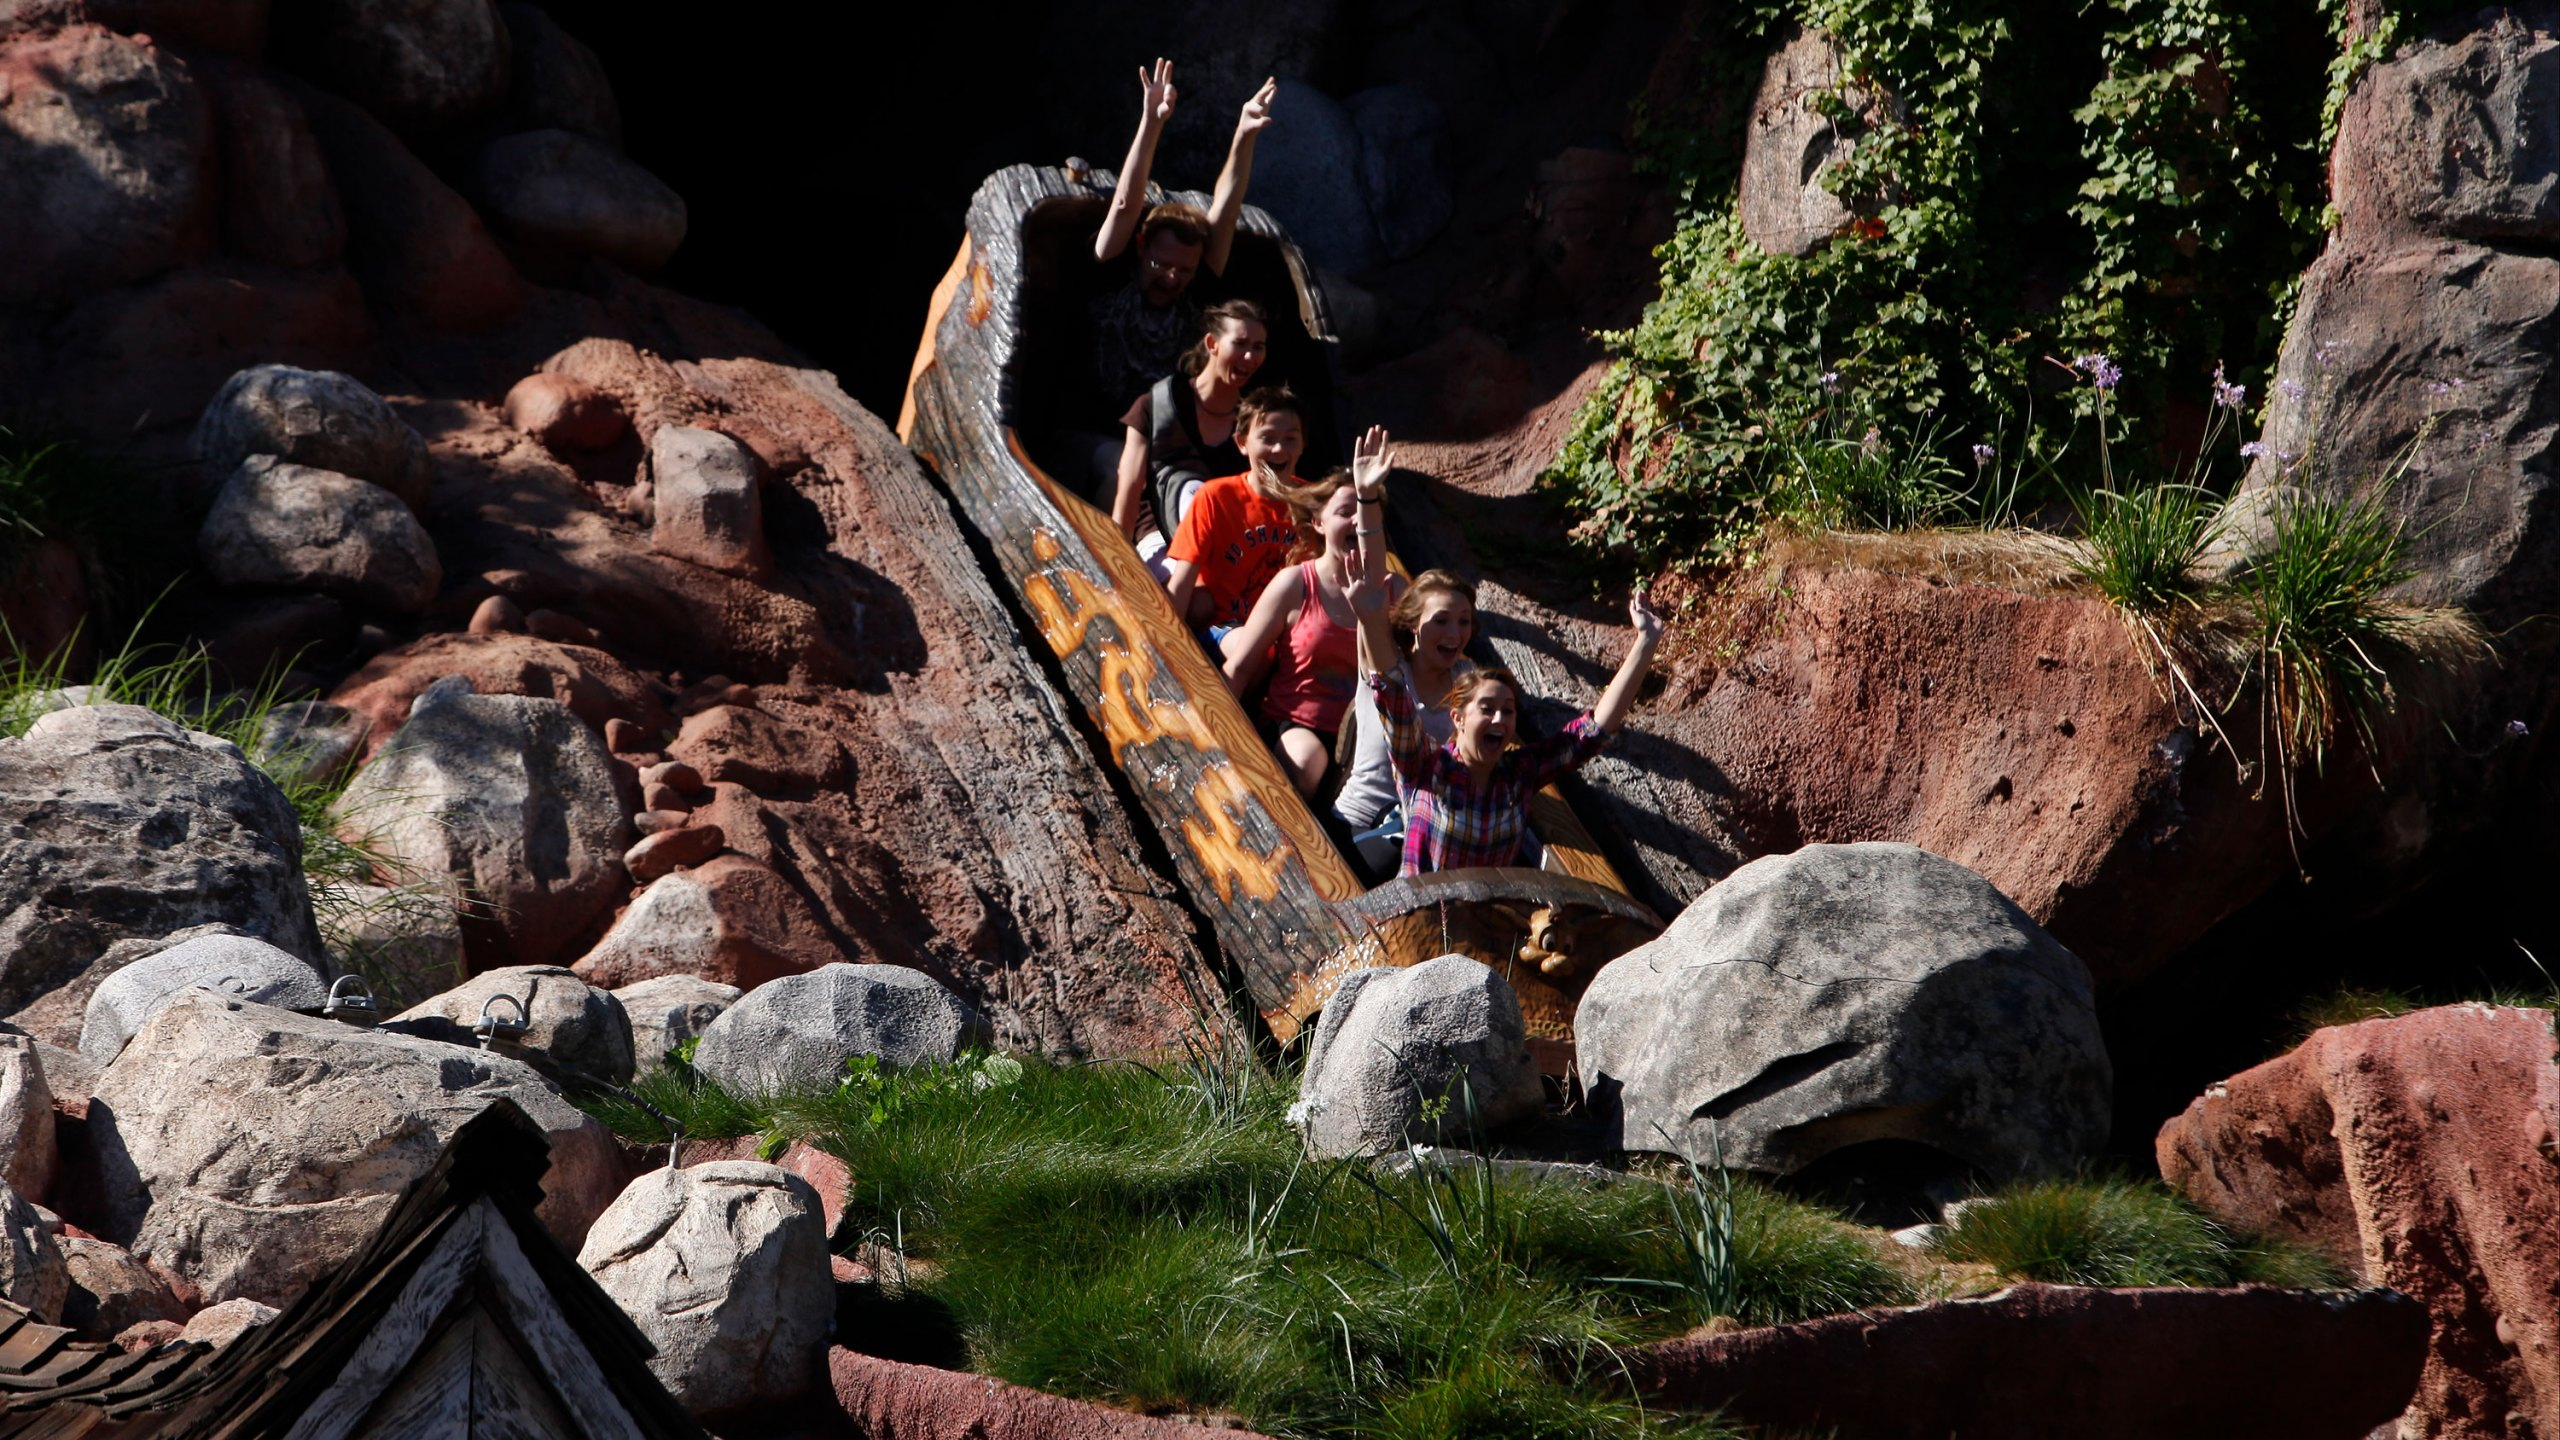 Guests ride Splash Mountain at Walt Disney Co.'s Disneyland Park, part of the Disneyland Resort, in Anaheim, on Nov. 6, 2013. (Patrick Fallon/Bloomberg via Getty Images)